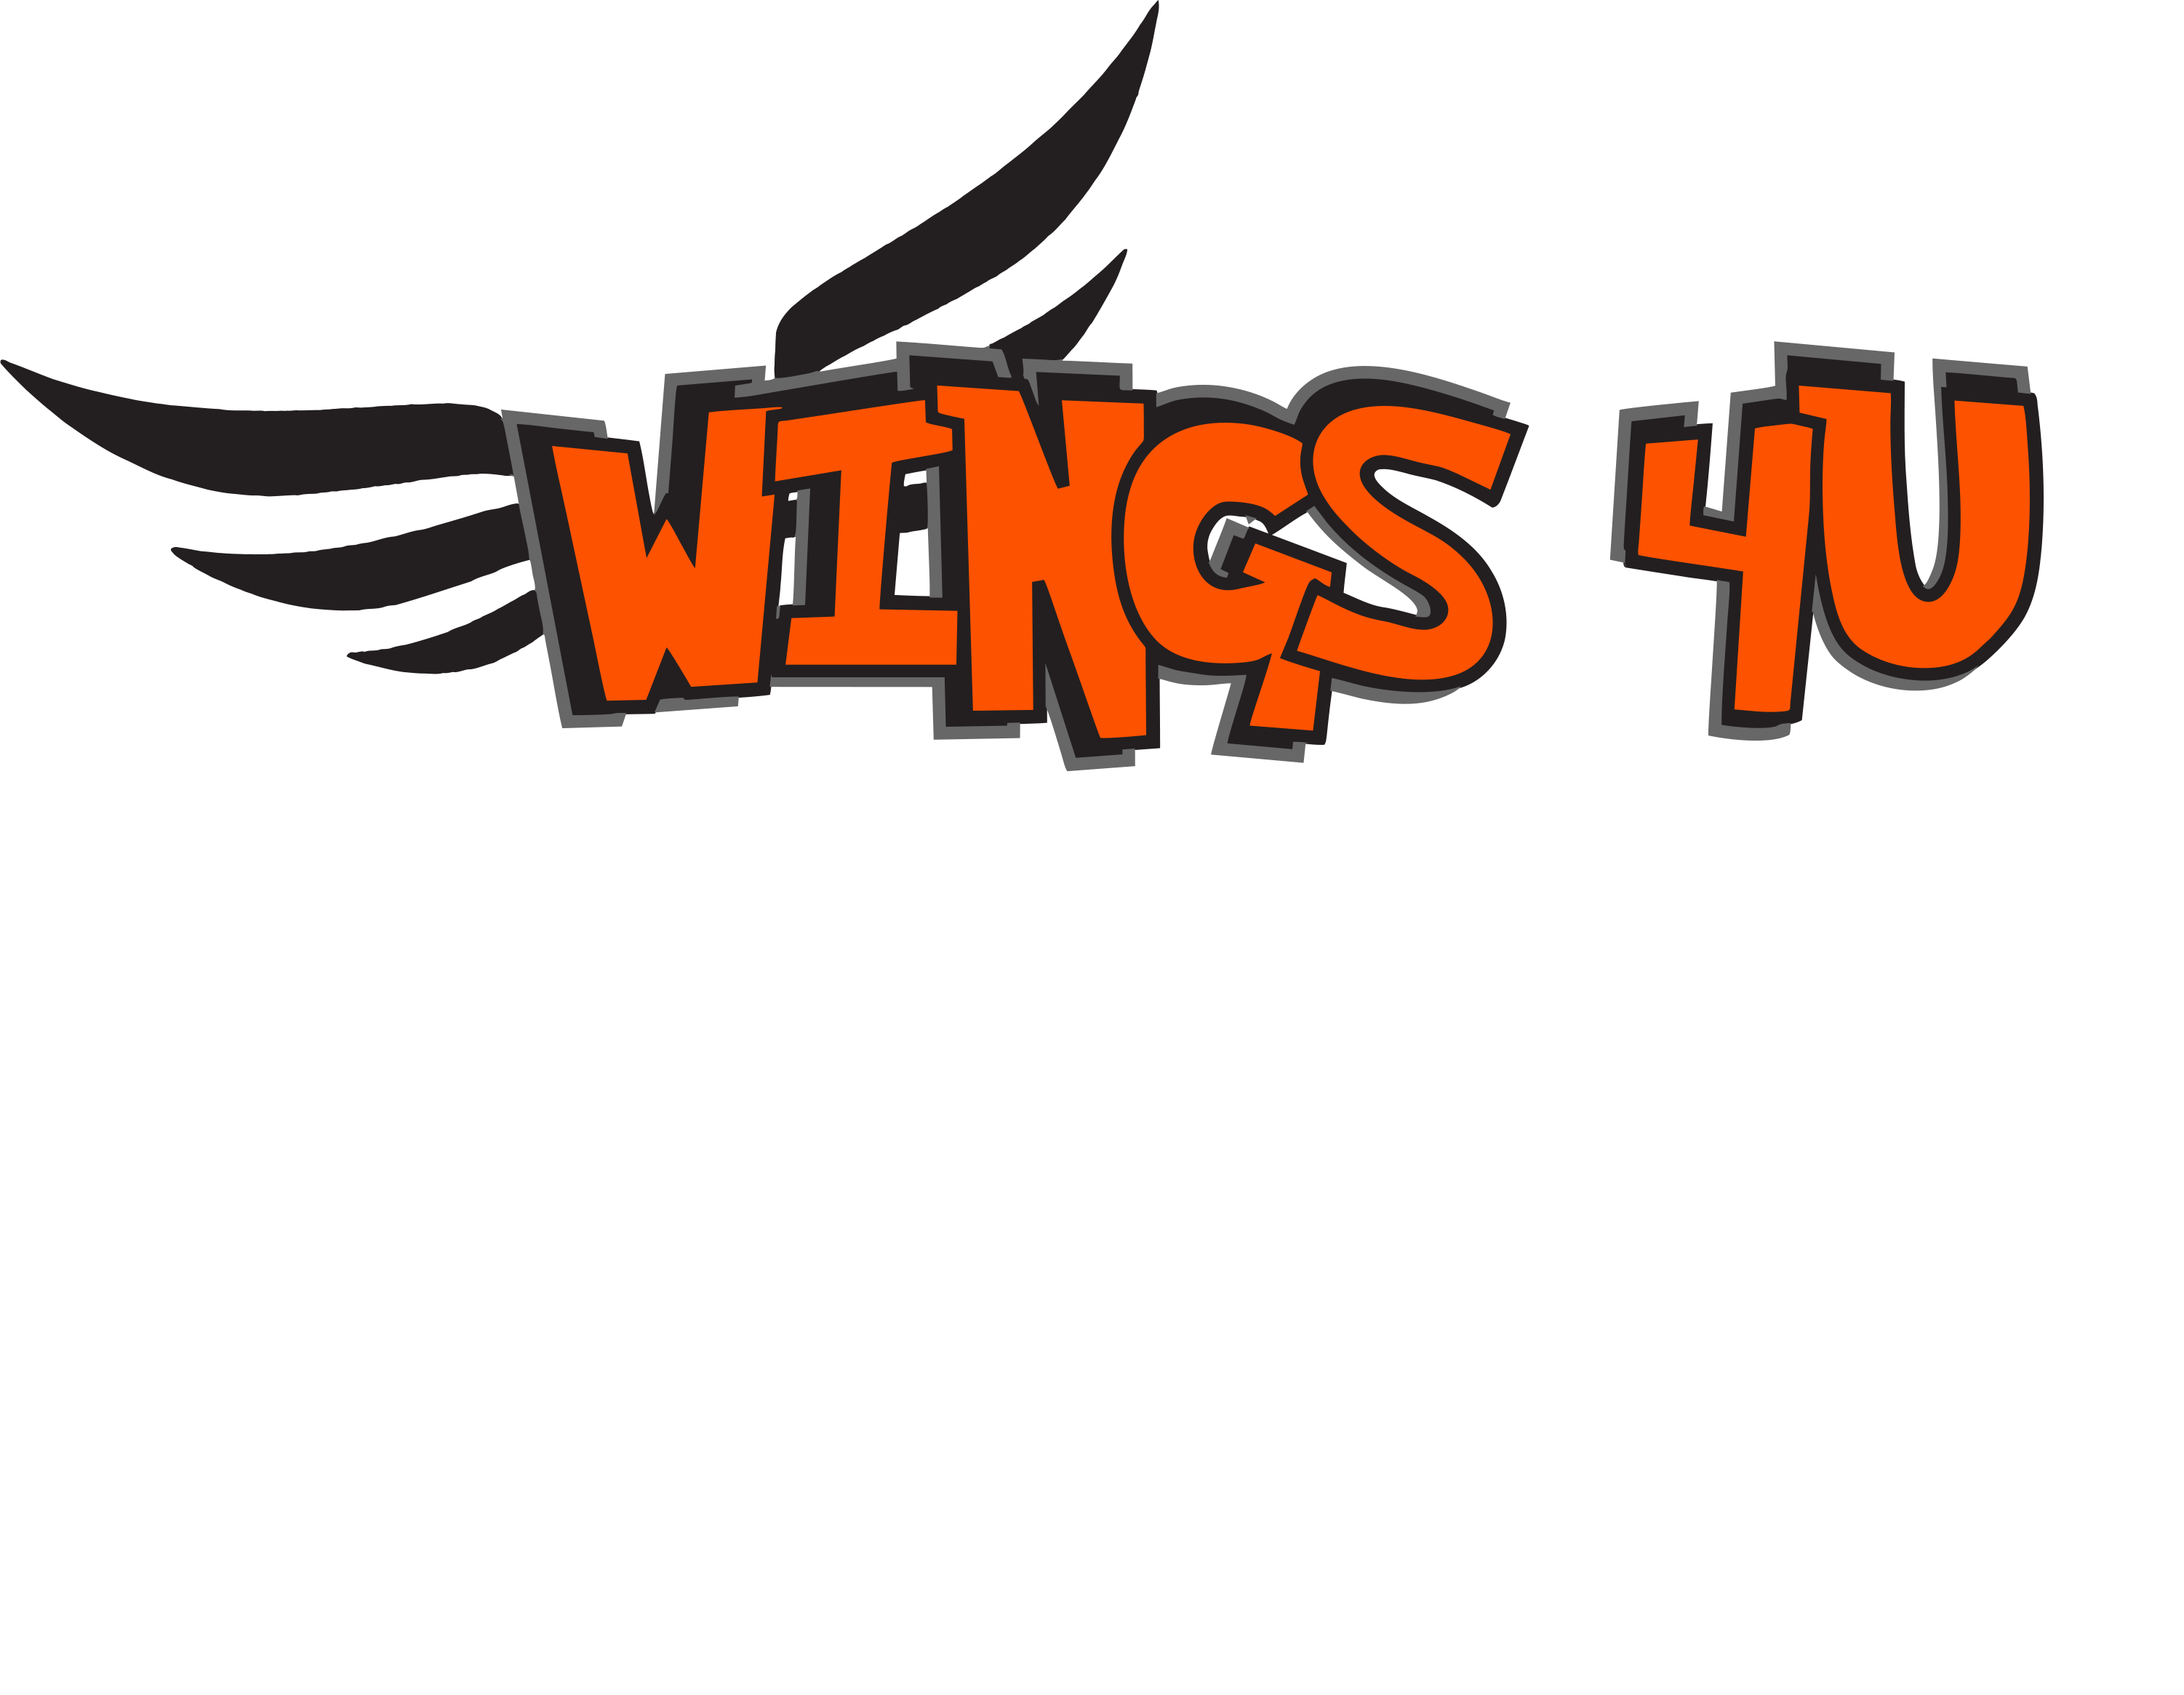 "Wings 4 U ""and the rest of the chicken."" 918-725-1500 Cushing, OK"